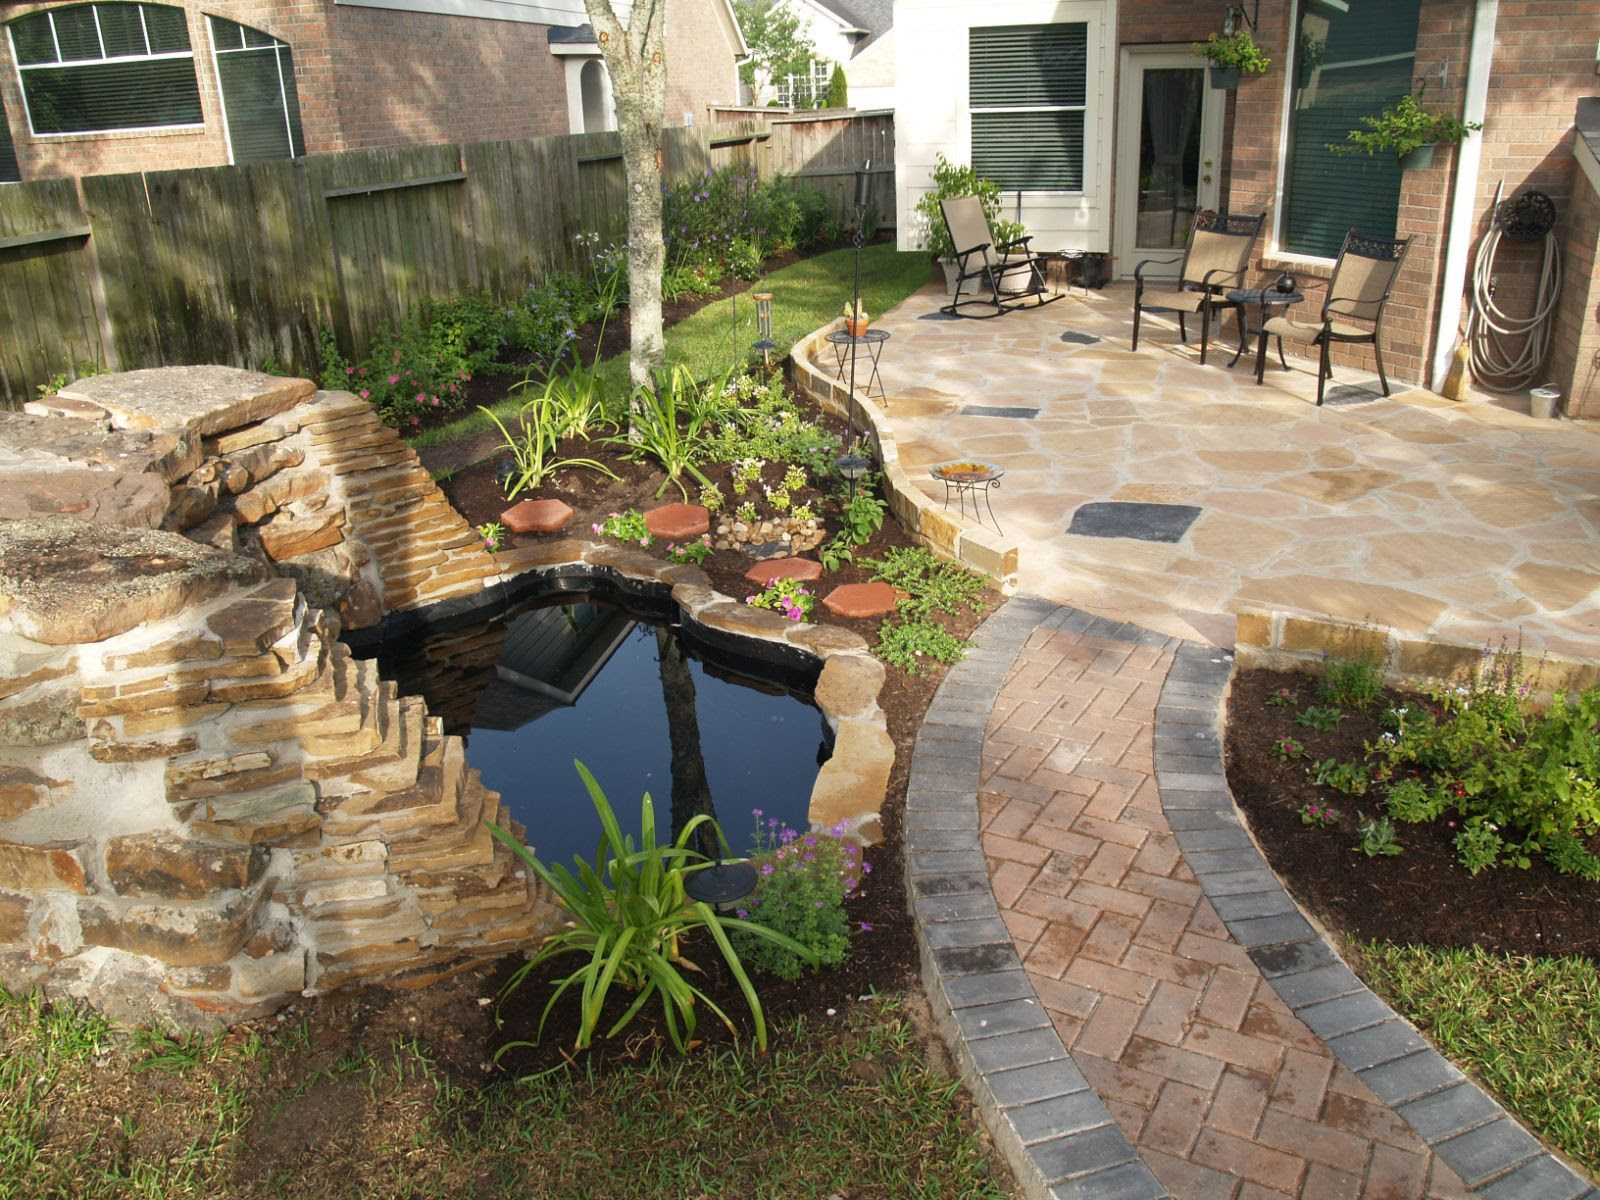 Landscaping for a backyard ideas